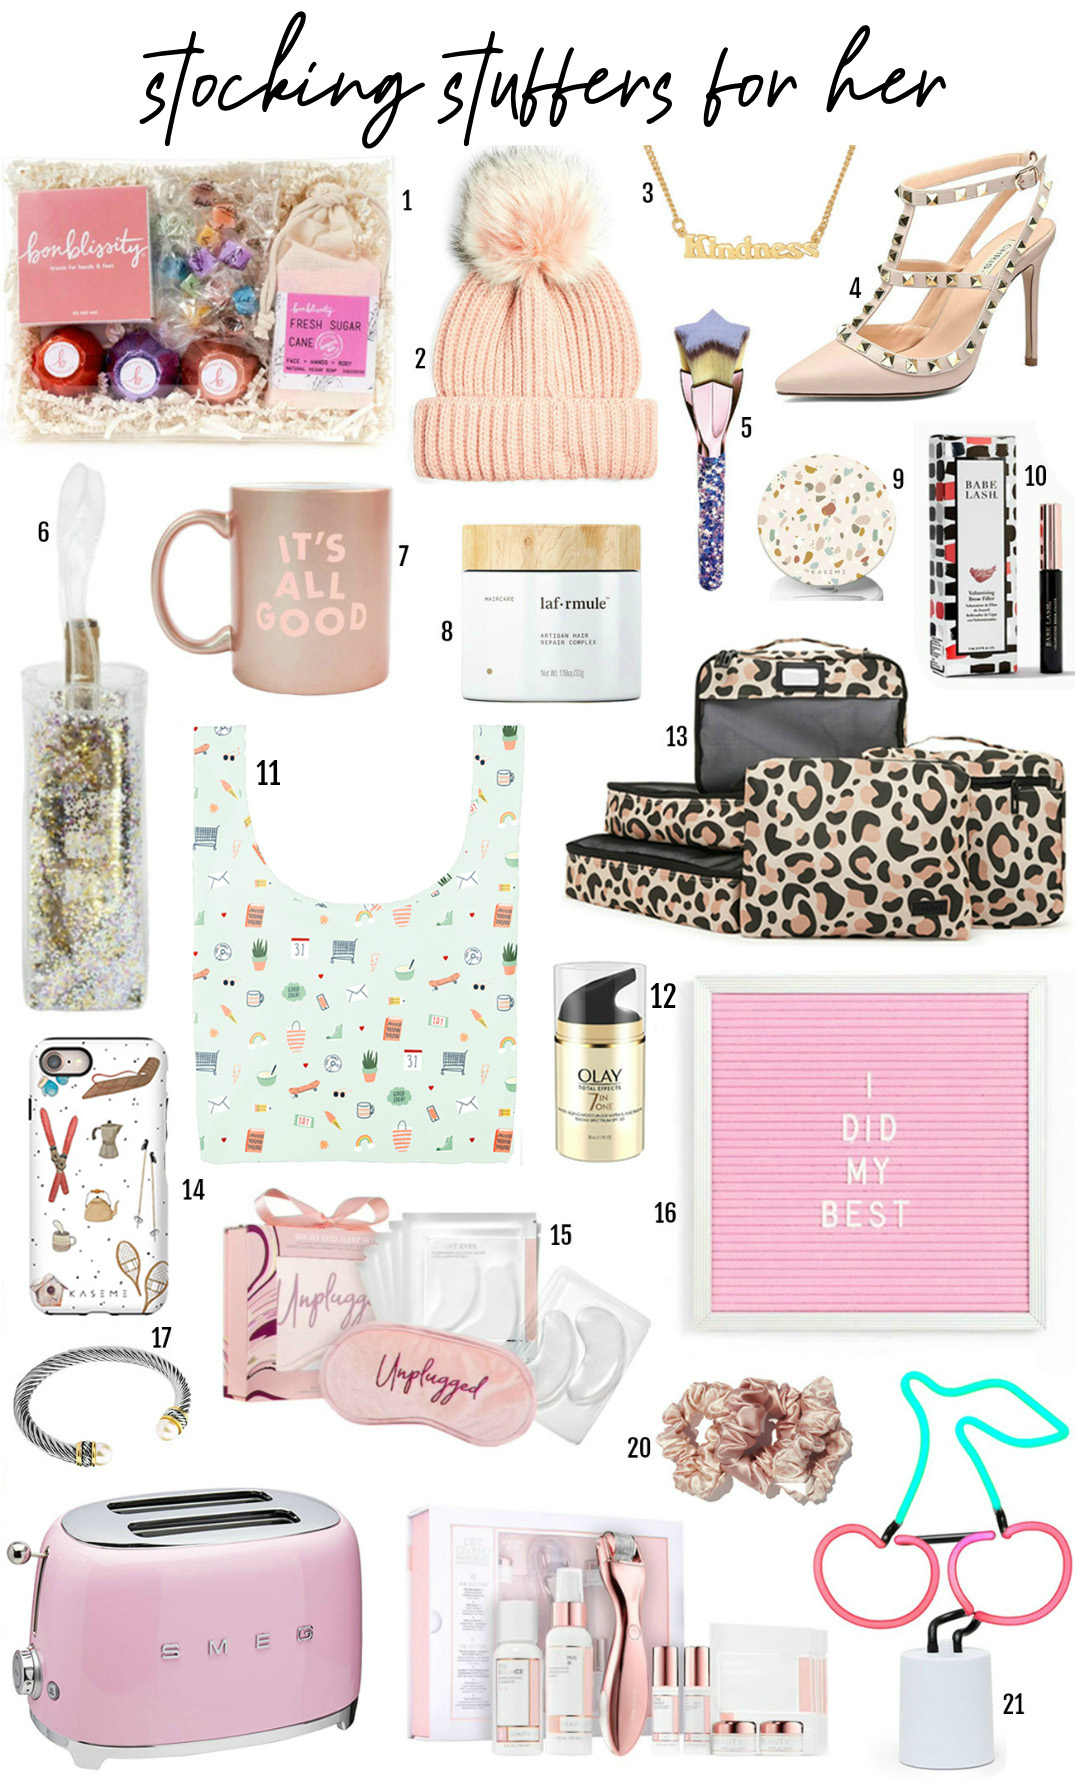 stocking stuffers for her | stocking stuffers | lifestyle blogger Mash Elle | what to buy for her | gf gift | mom gift | SIL gift | MIL Gift | heels